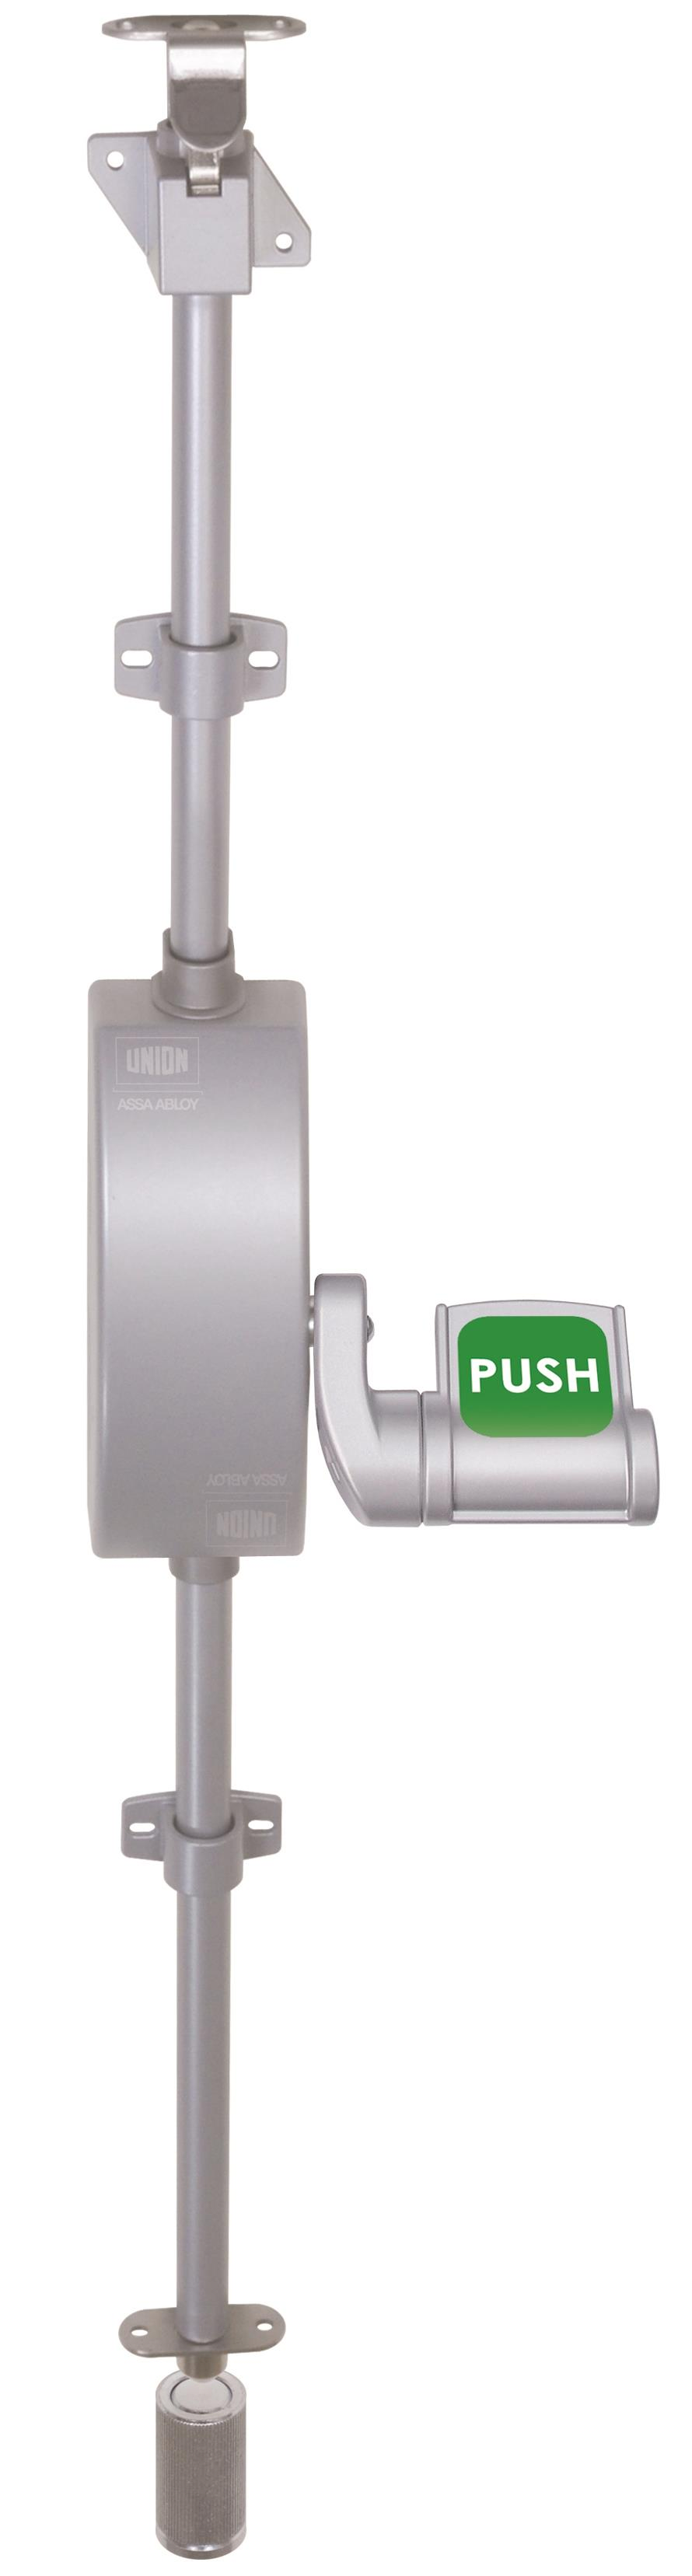 EPB808N - Emergency Push Pad Bolt